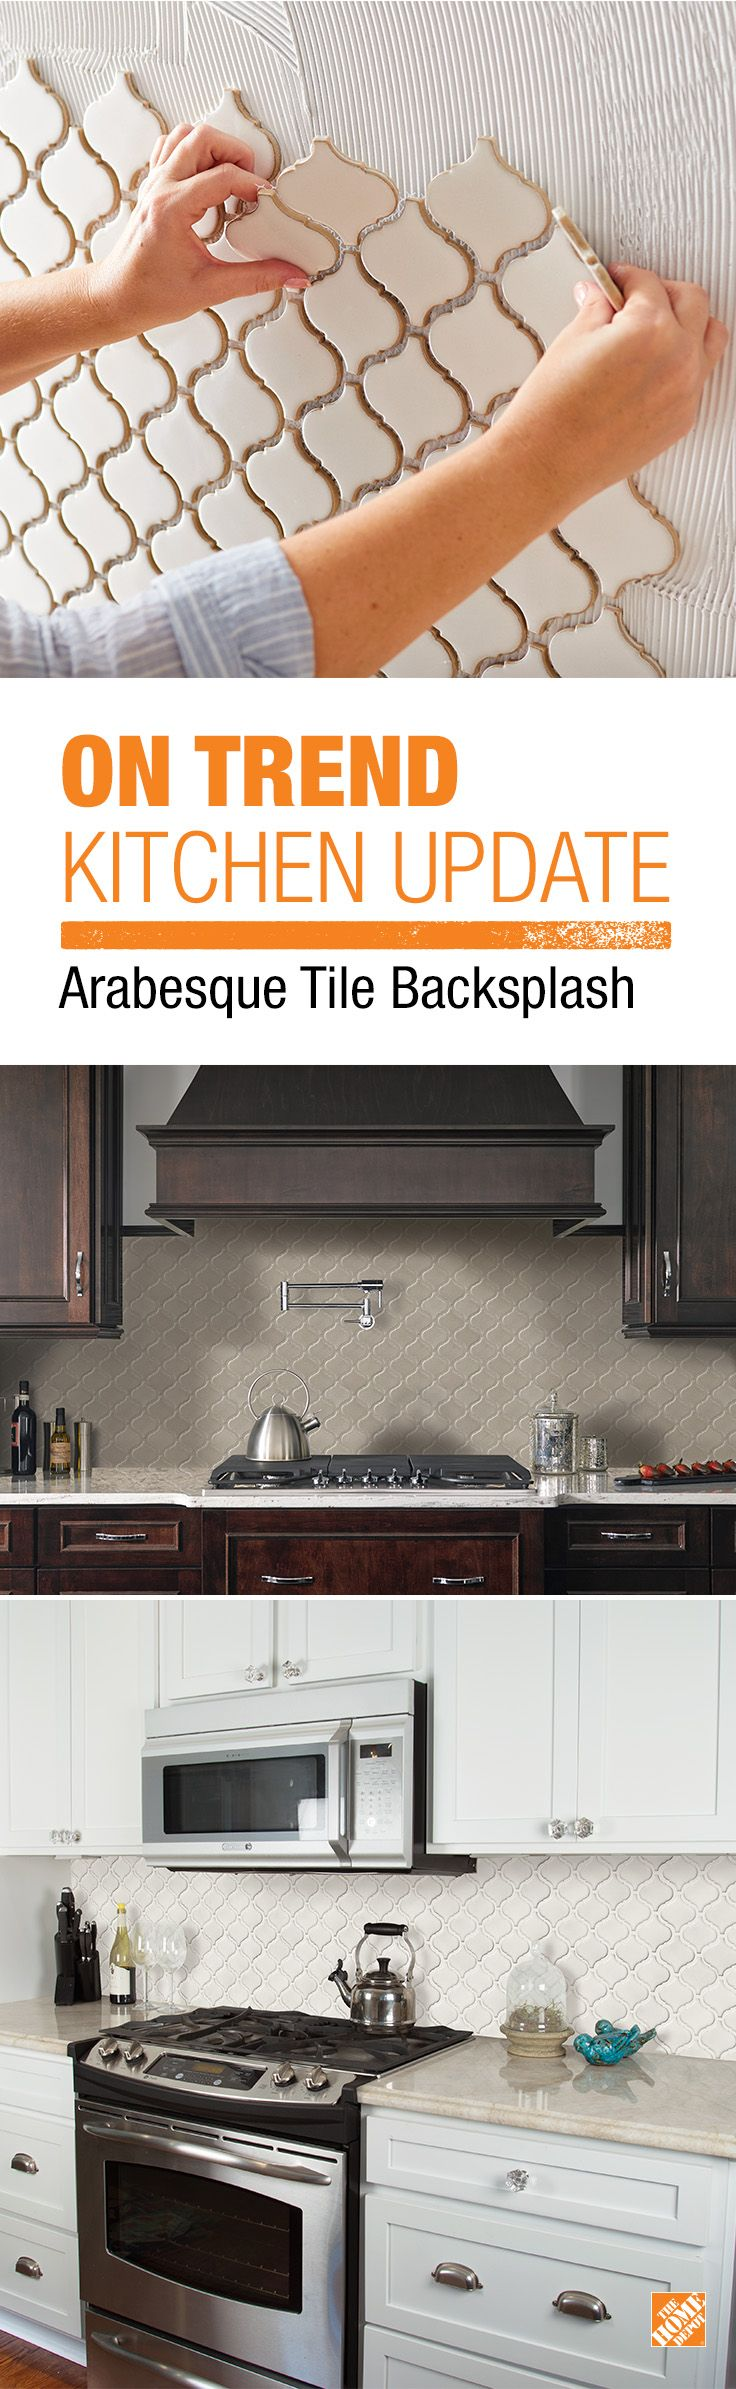 best 25 arabesque tile backsplash ideas only on pinterest